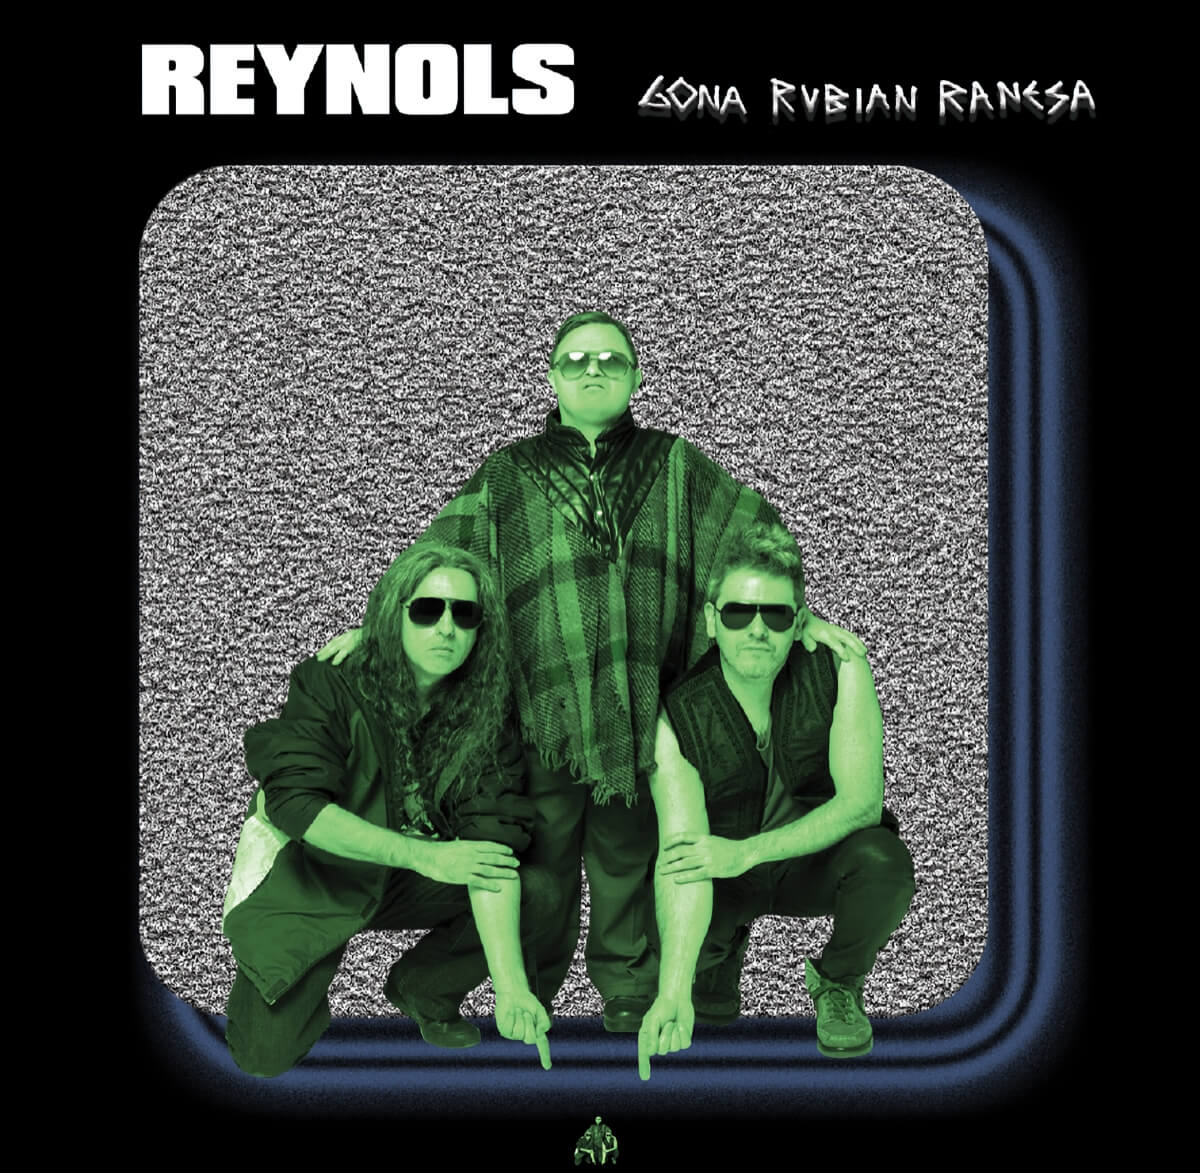 Cover picture of Reynols Gona Rubian Ranesa album, which is pressed on translucent alien green vinyl.